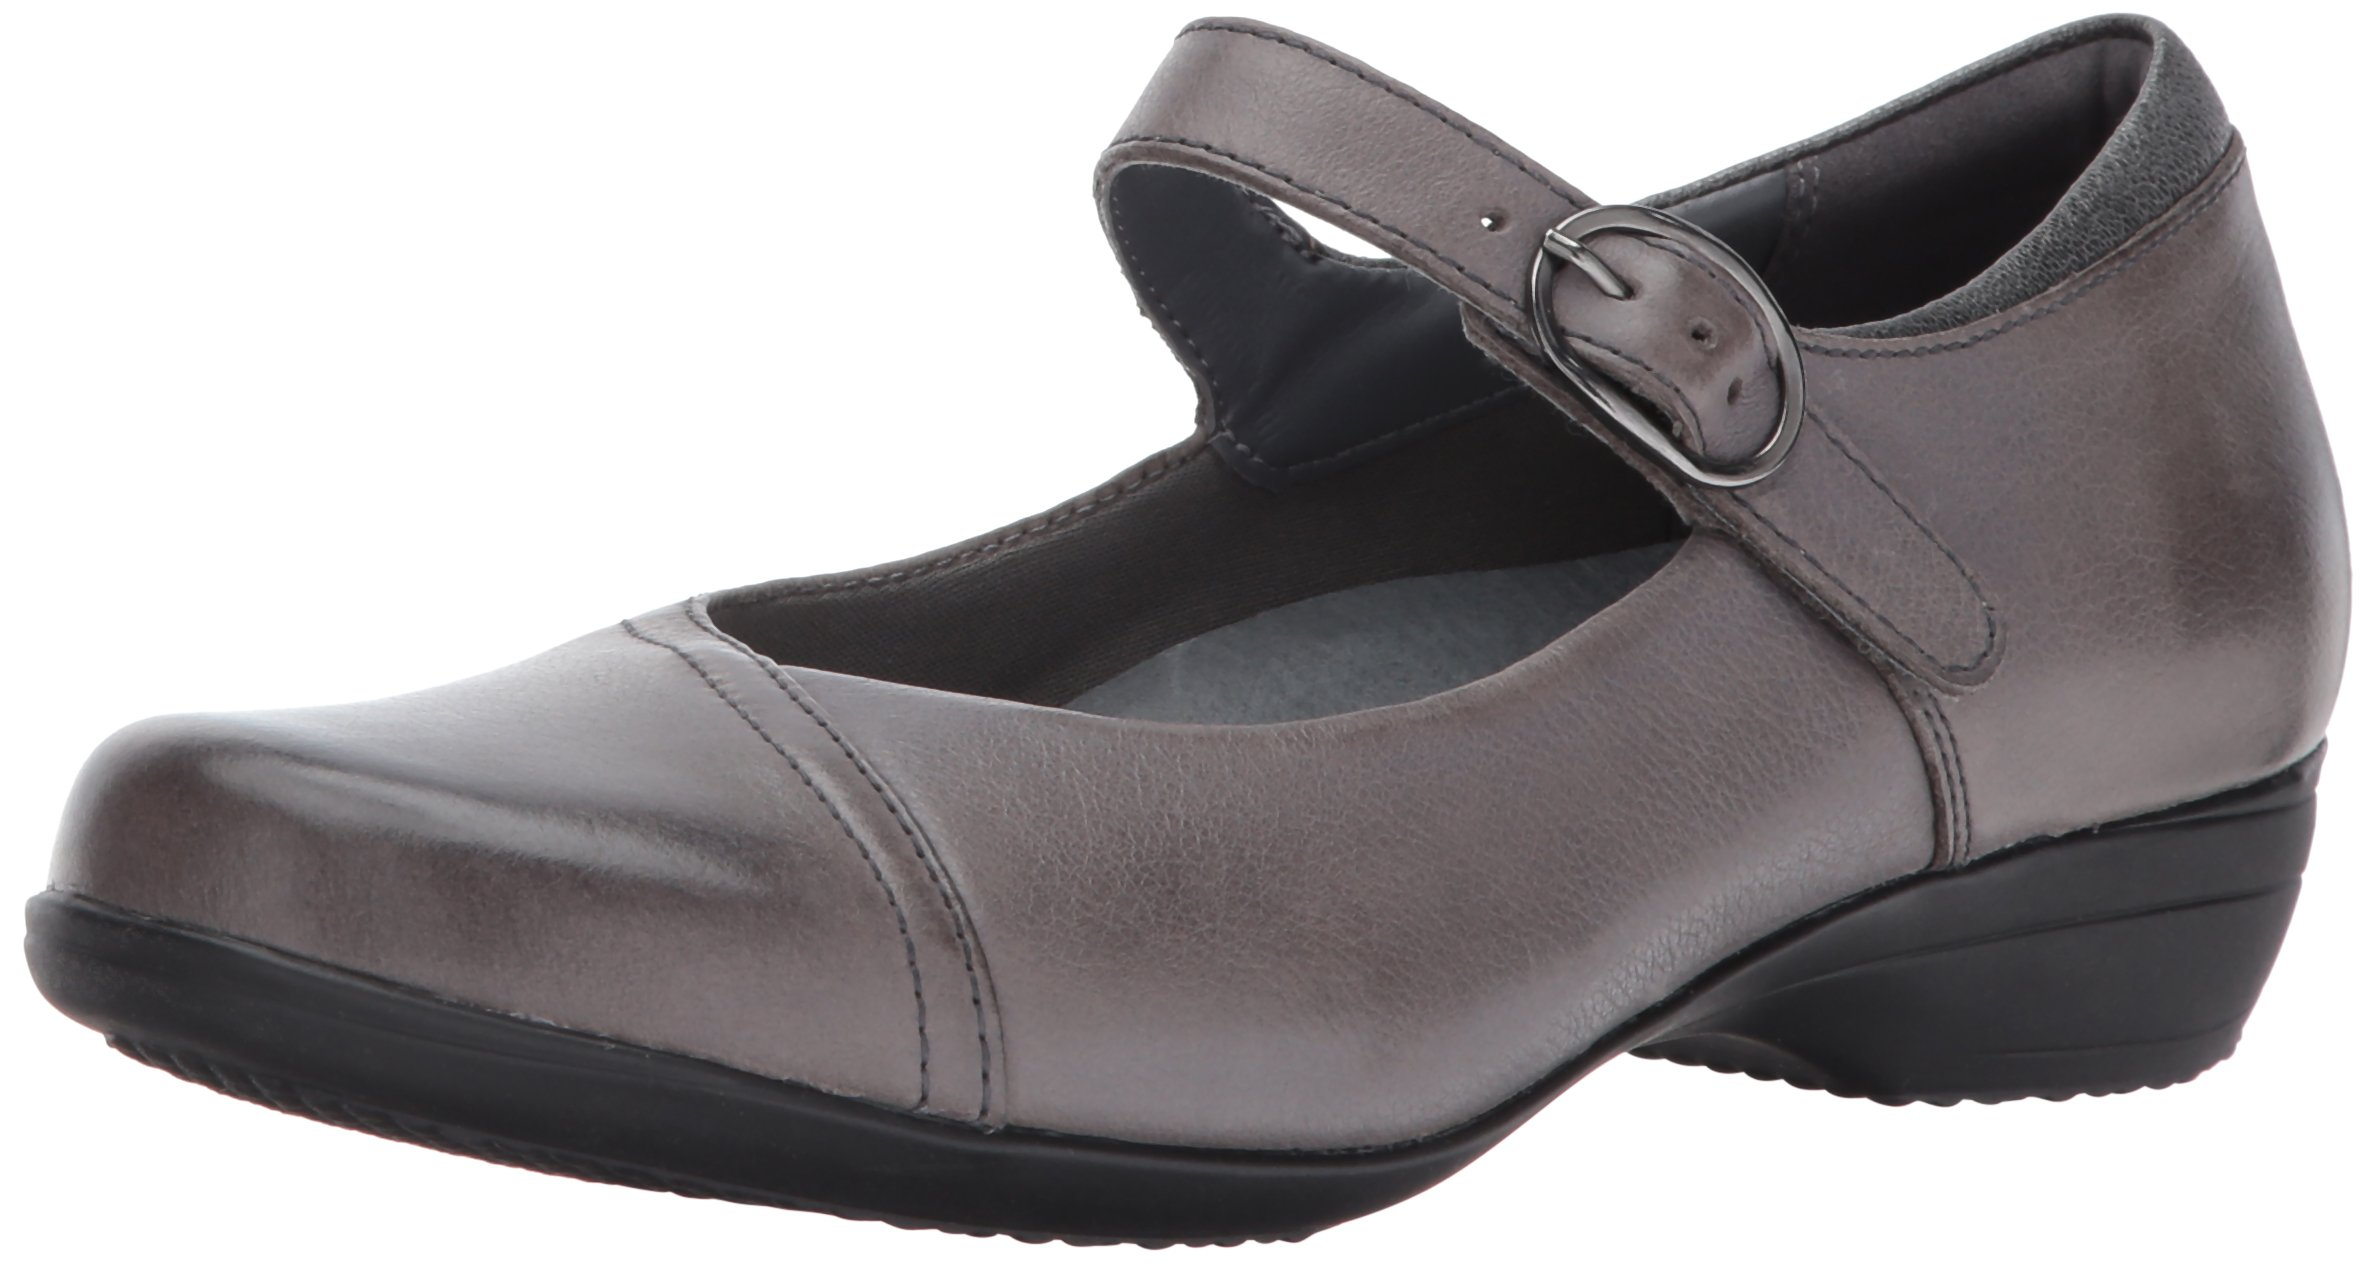 Dansko Women's Fawna Mary Jane Flat,Grey Burnished Nappa,37 EU/6.5-7 M US